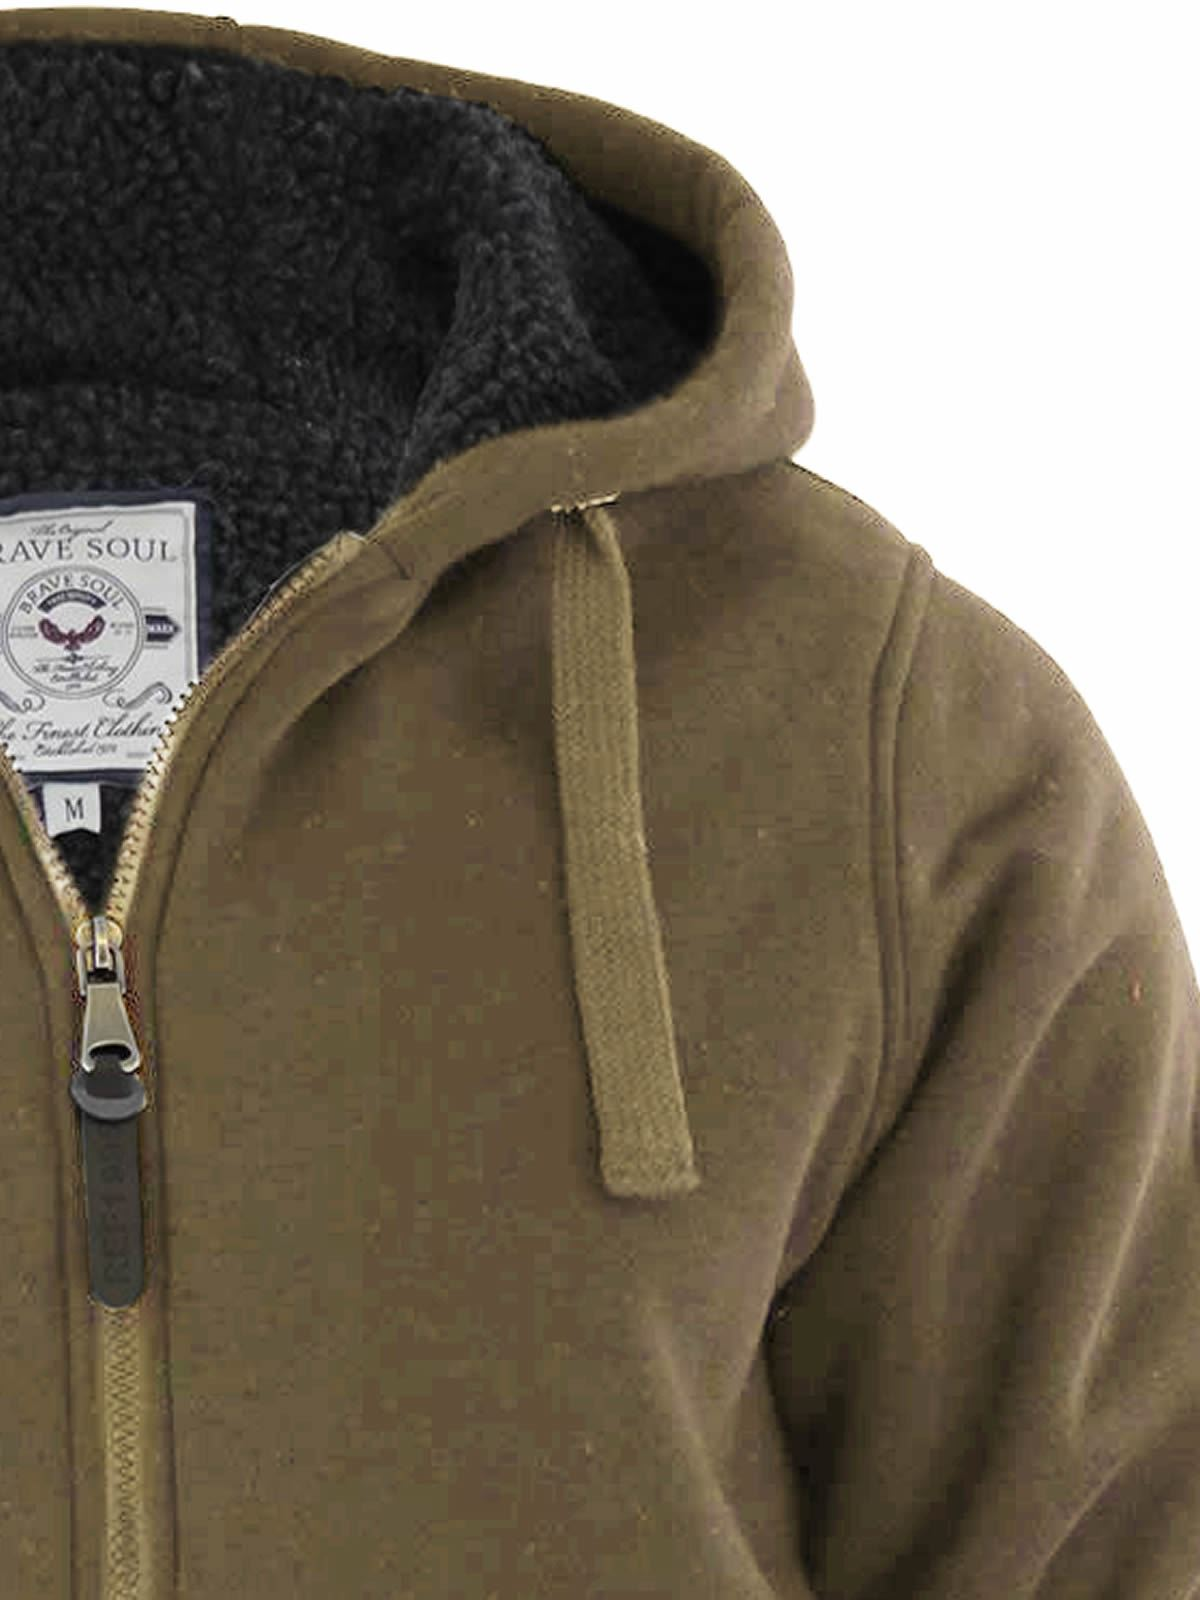 Brave-Soul-Zone-Mens-Hoodie-Sherpa-Fleece-Lined-Zip-Up-Hooded-Sweater thumbnail 13